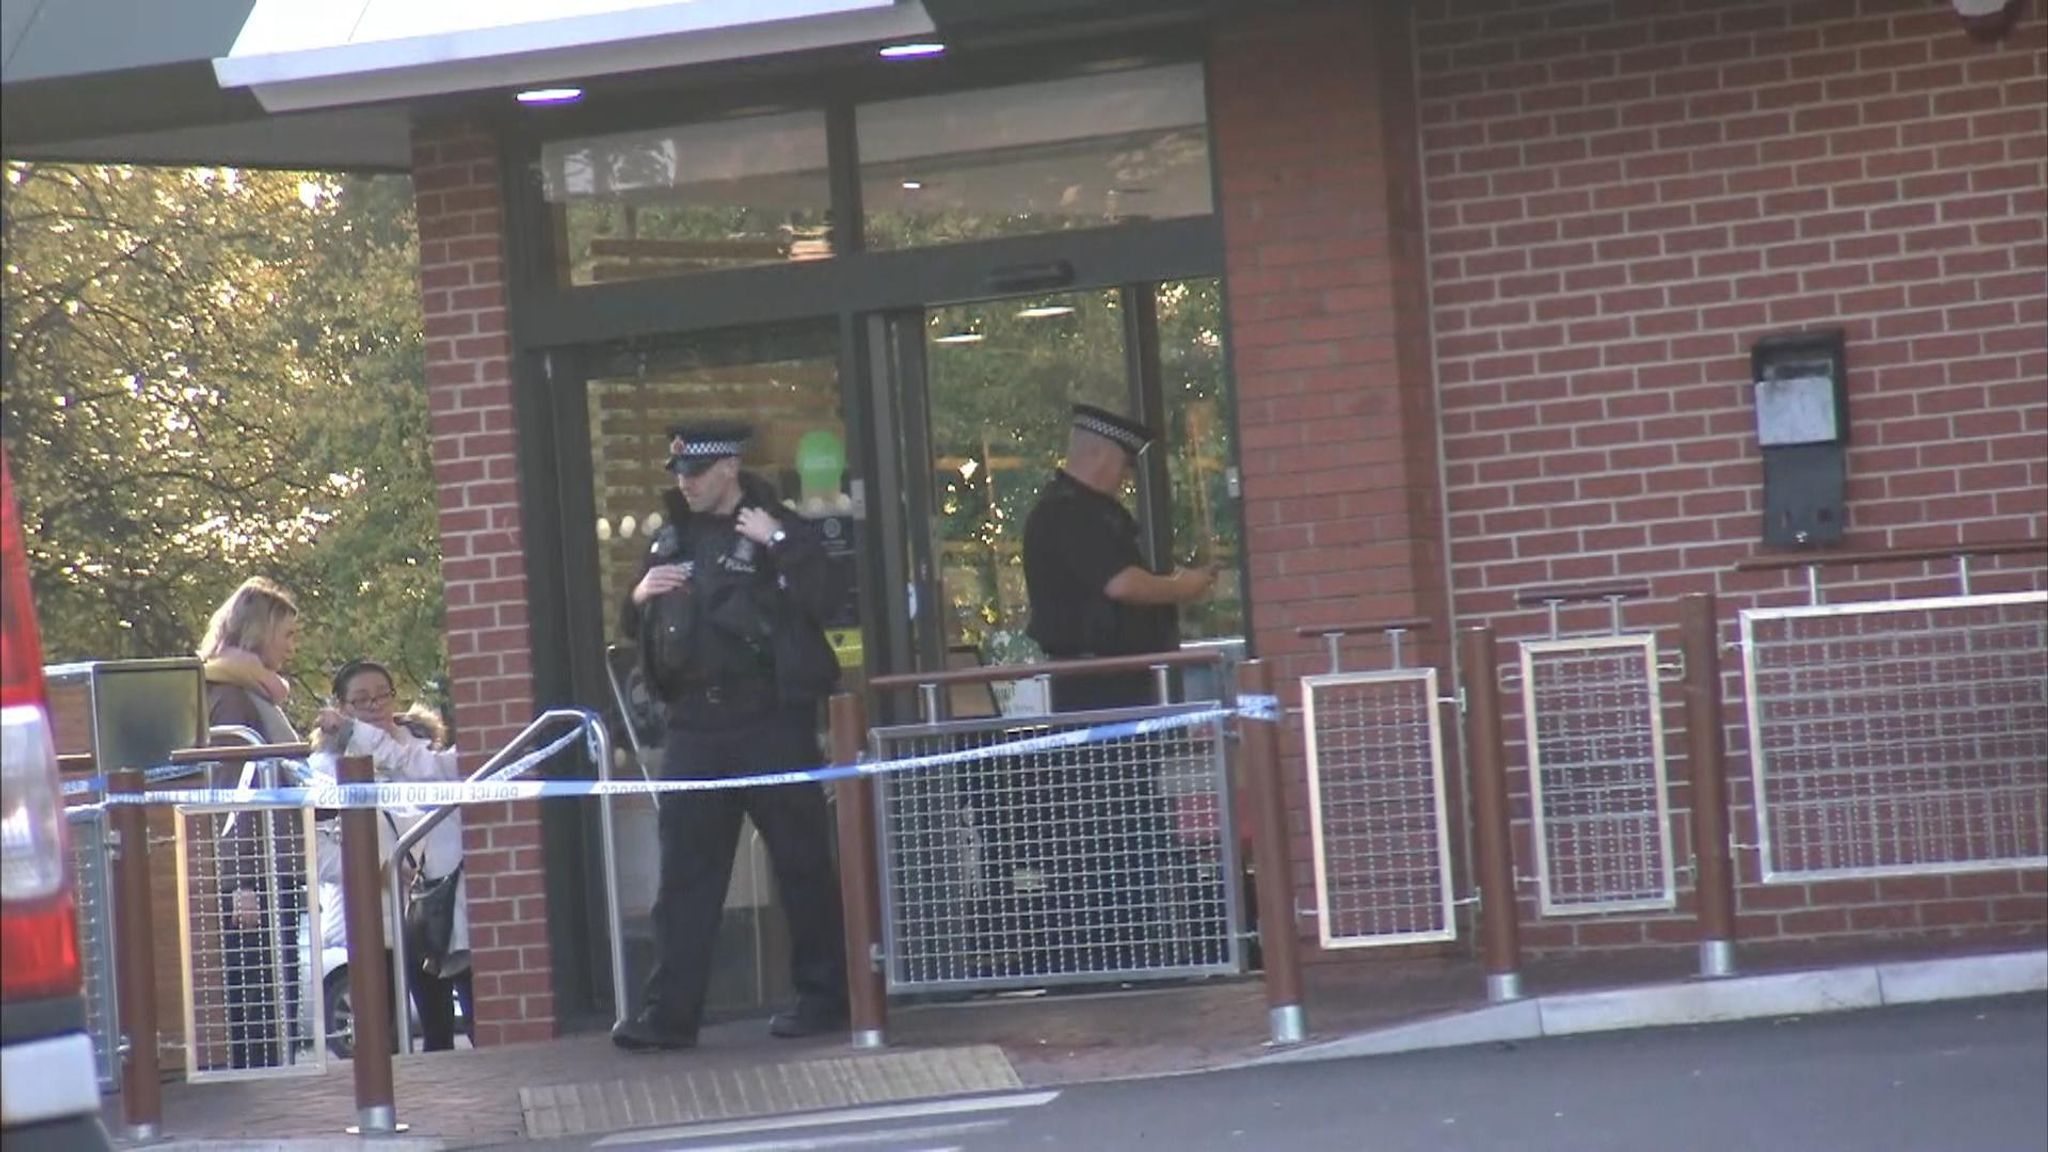 Manchester: Teenagers arrested after stabbing in shopping centre